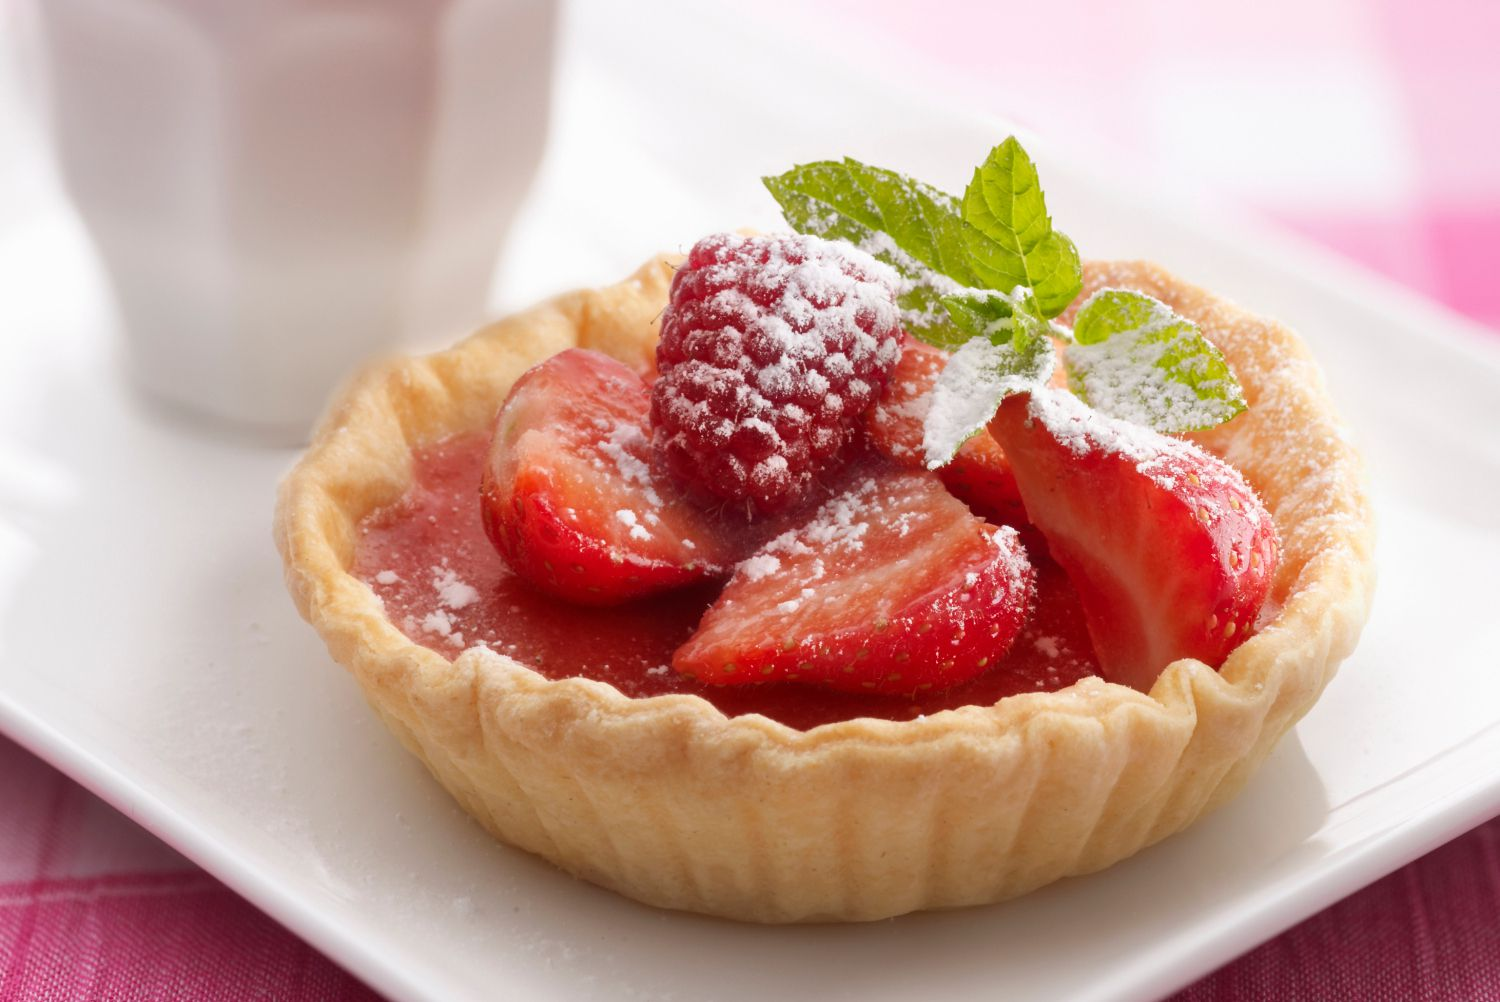 sweet short dough pastry recipe for tarts and pies